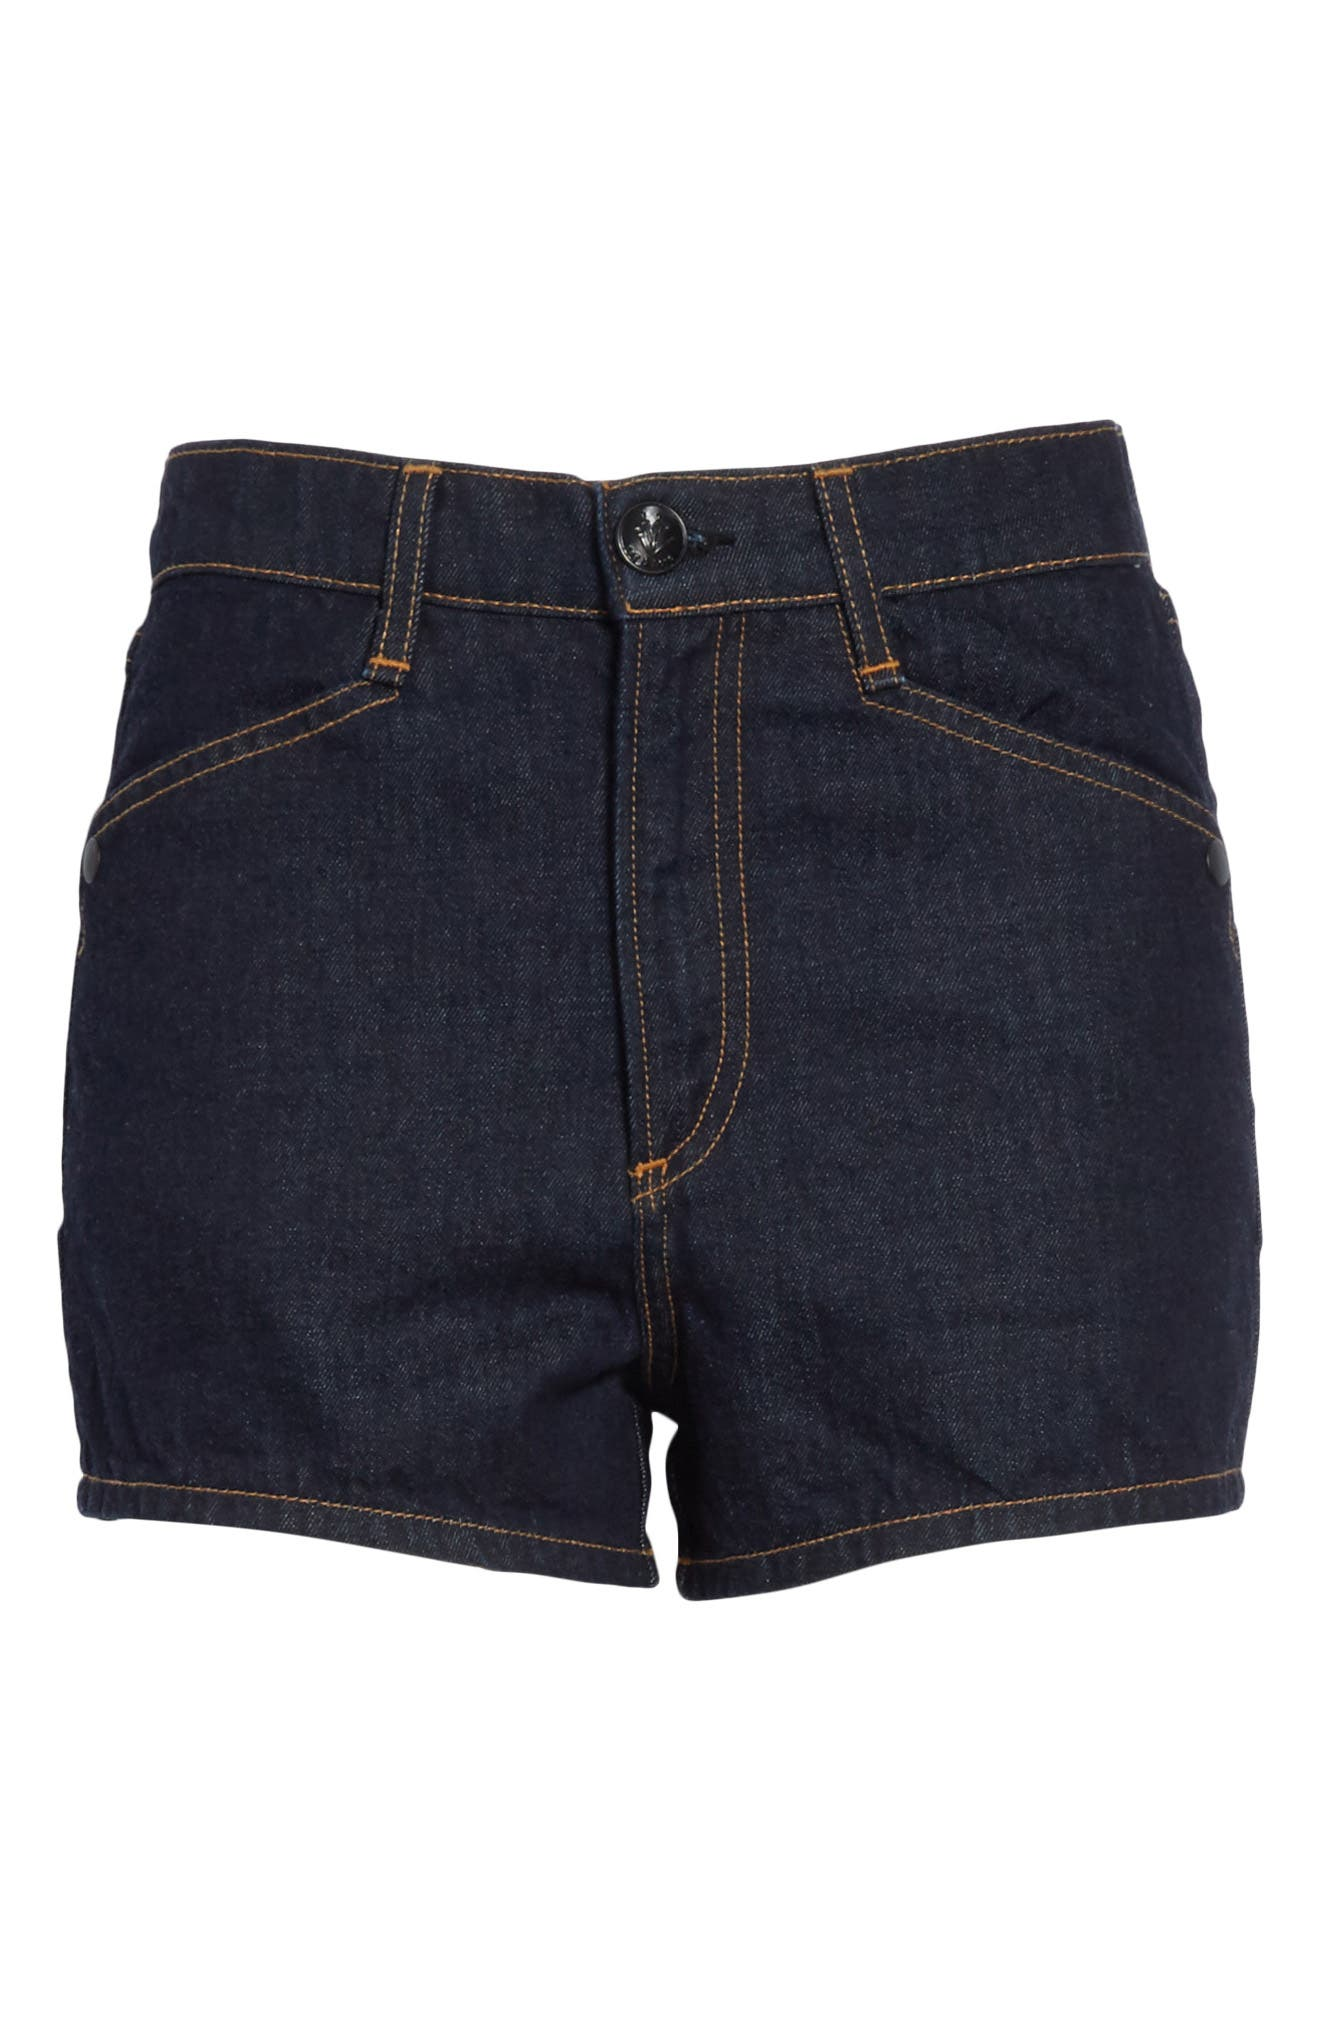 Ellie Denim Shorts,                             Alternate thumbnail 6, color,                             Indigo